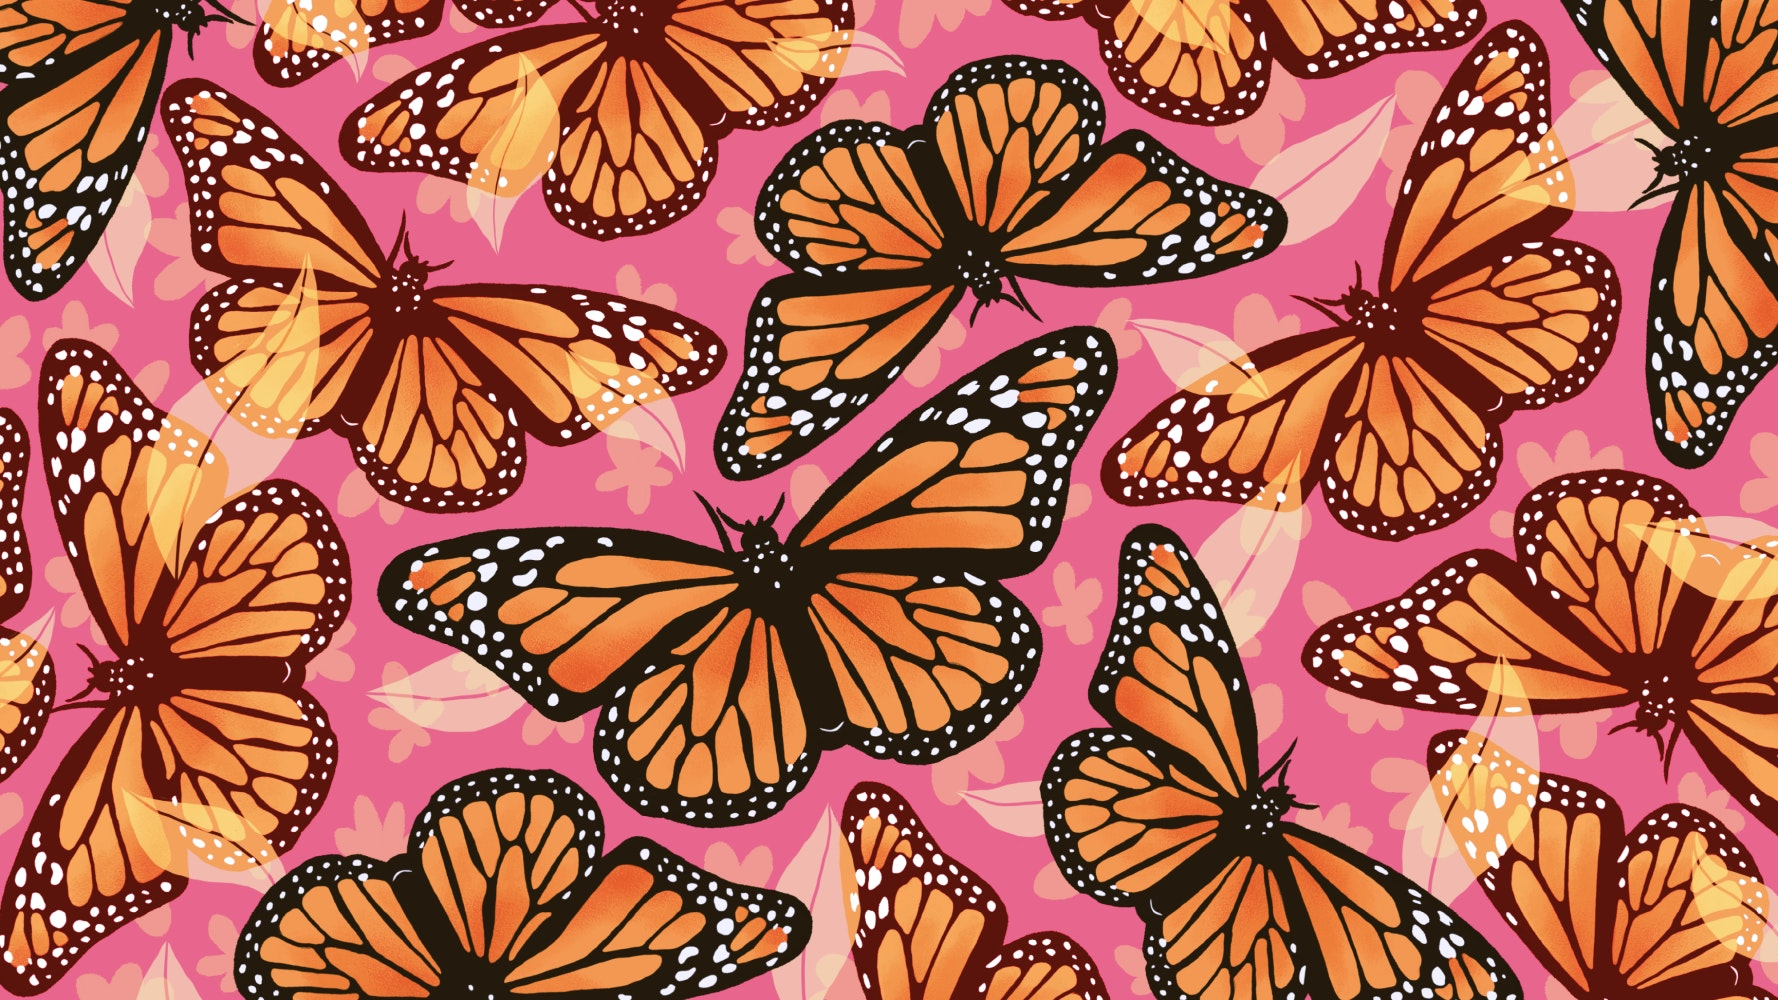 Monarch Butterflies with beautiful wings